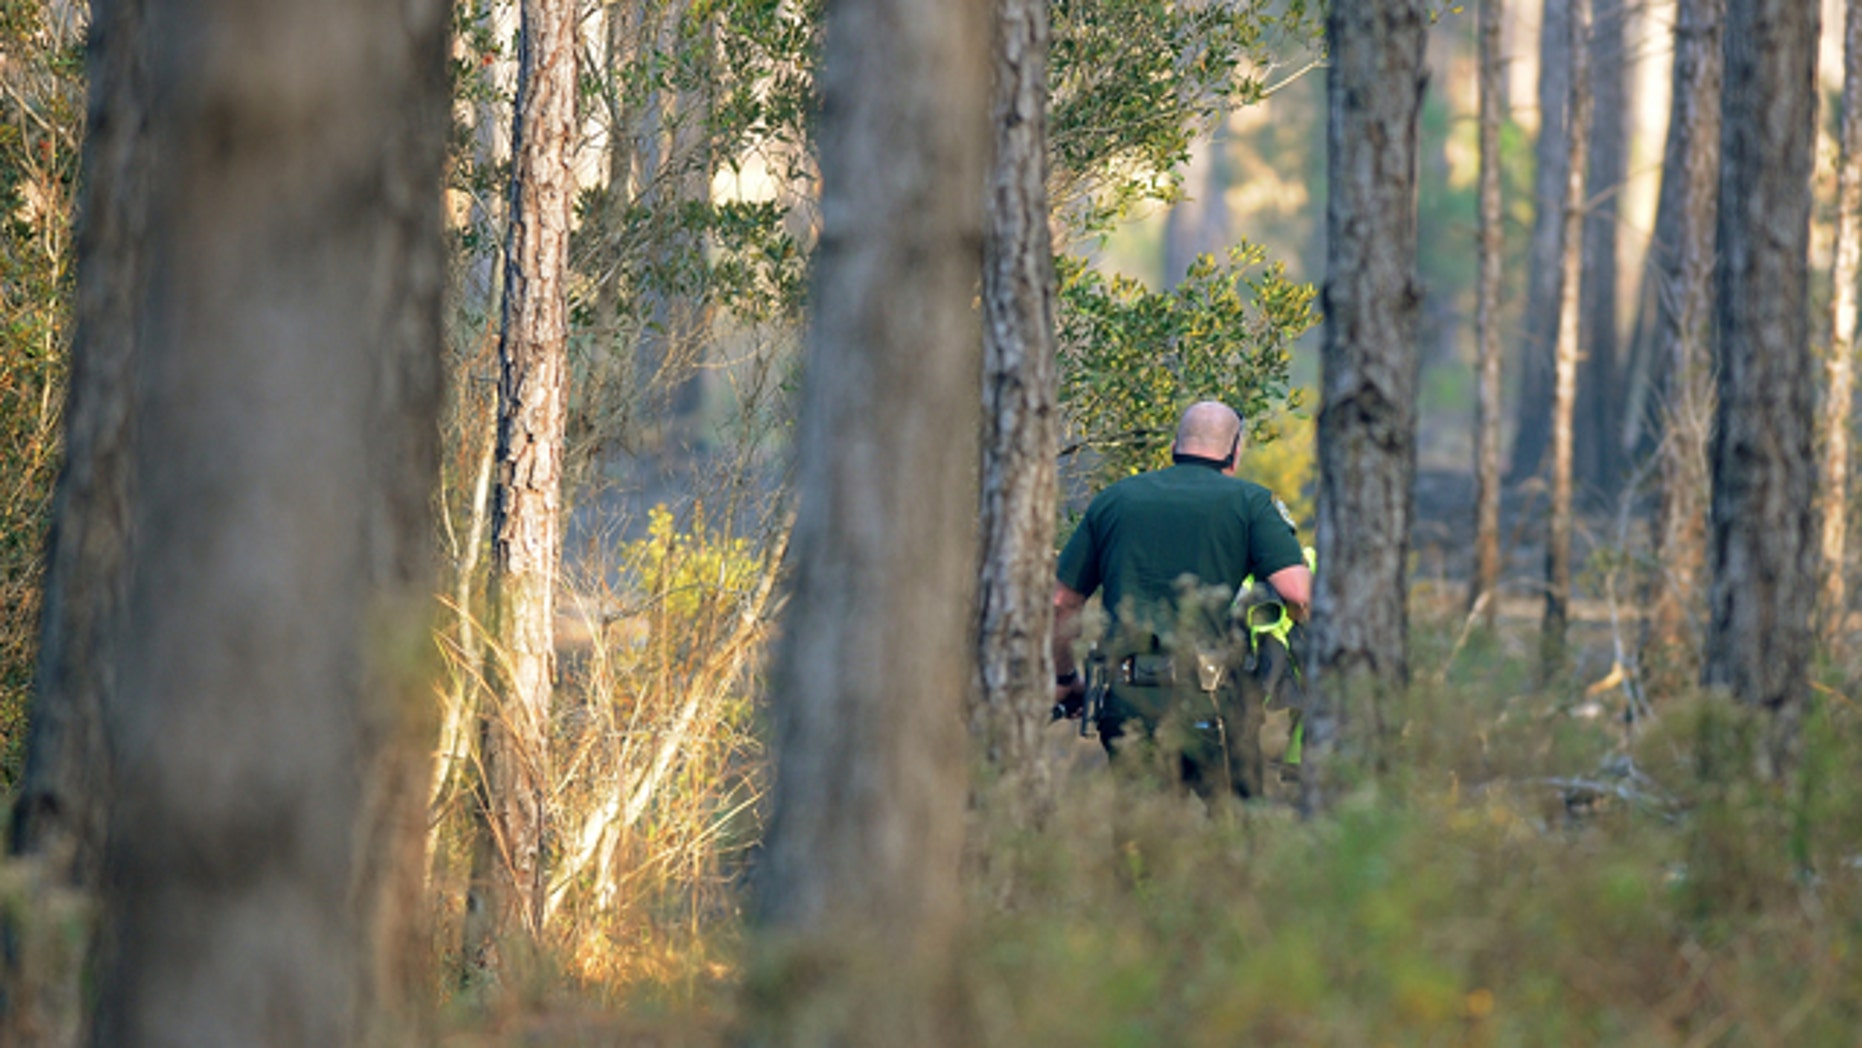 Dec. 26: A Clay County Sheriff's deputy walks by smoldering brush on his way to wreckage from a helicopter crash in an area west of Green Cove Springs.